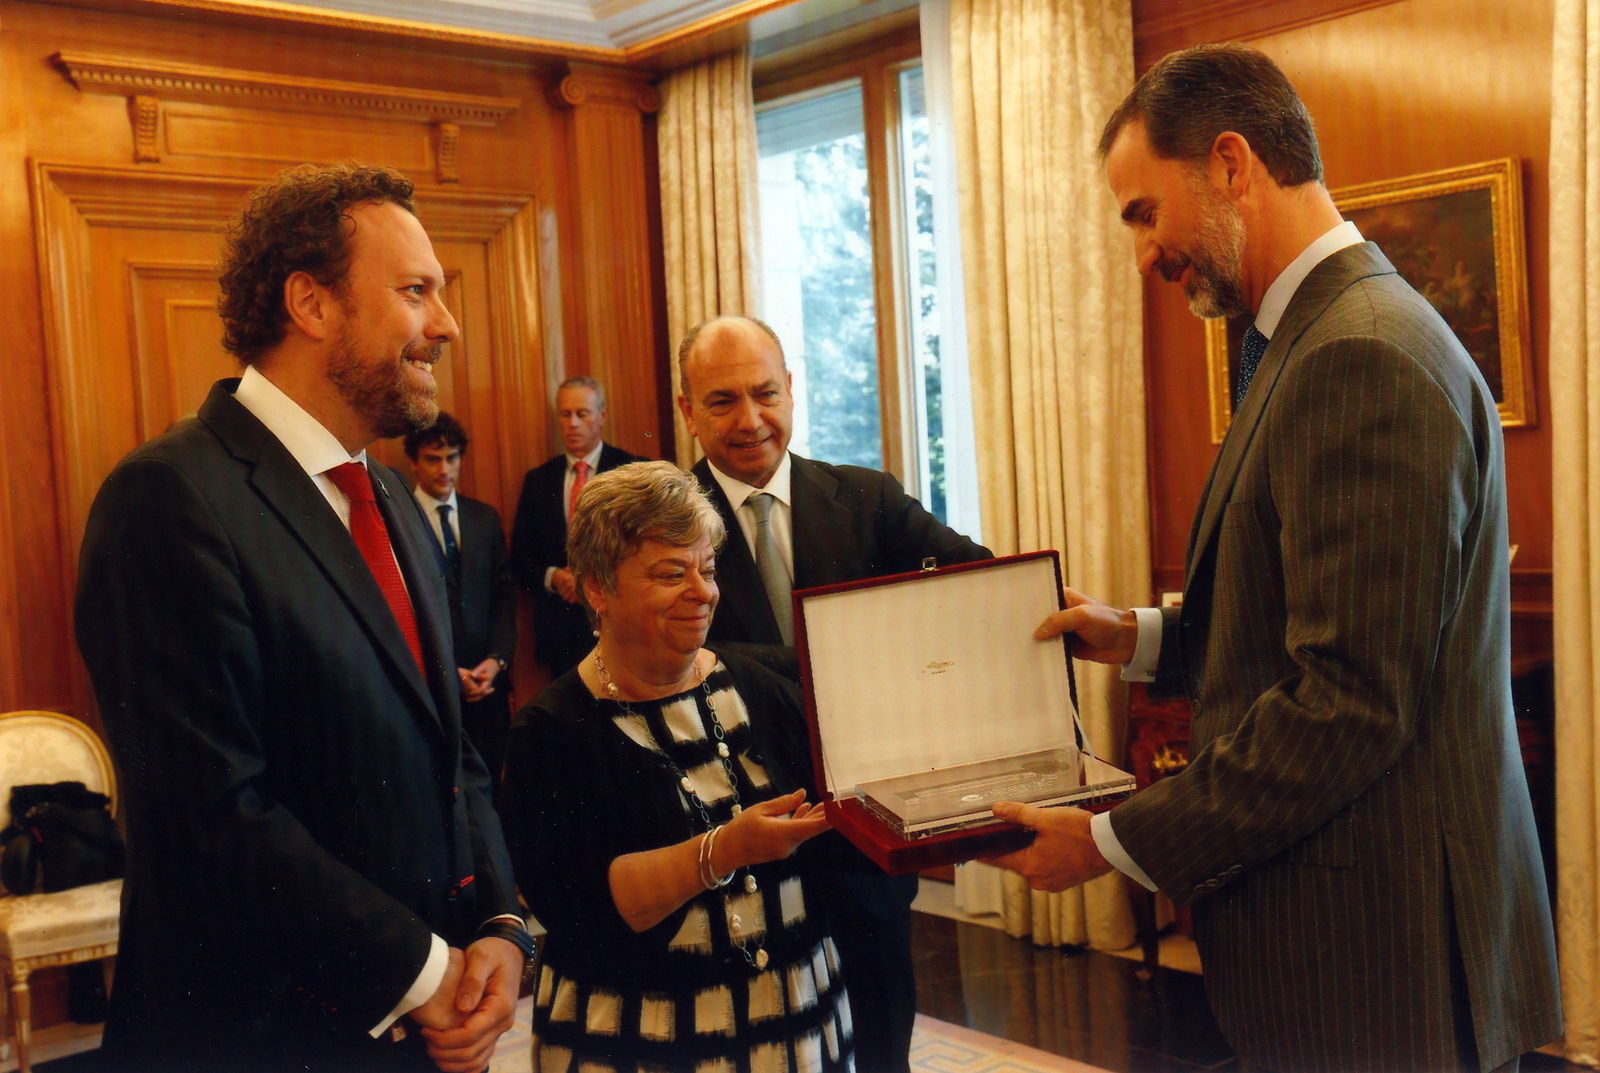 Doreen presenting Spain's King Felipe with a symbolic key from the International Sephardic community.